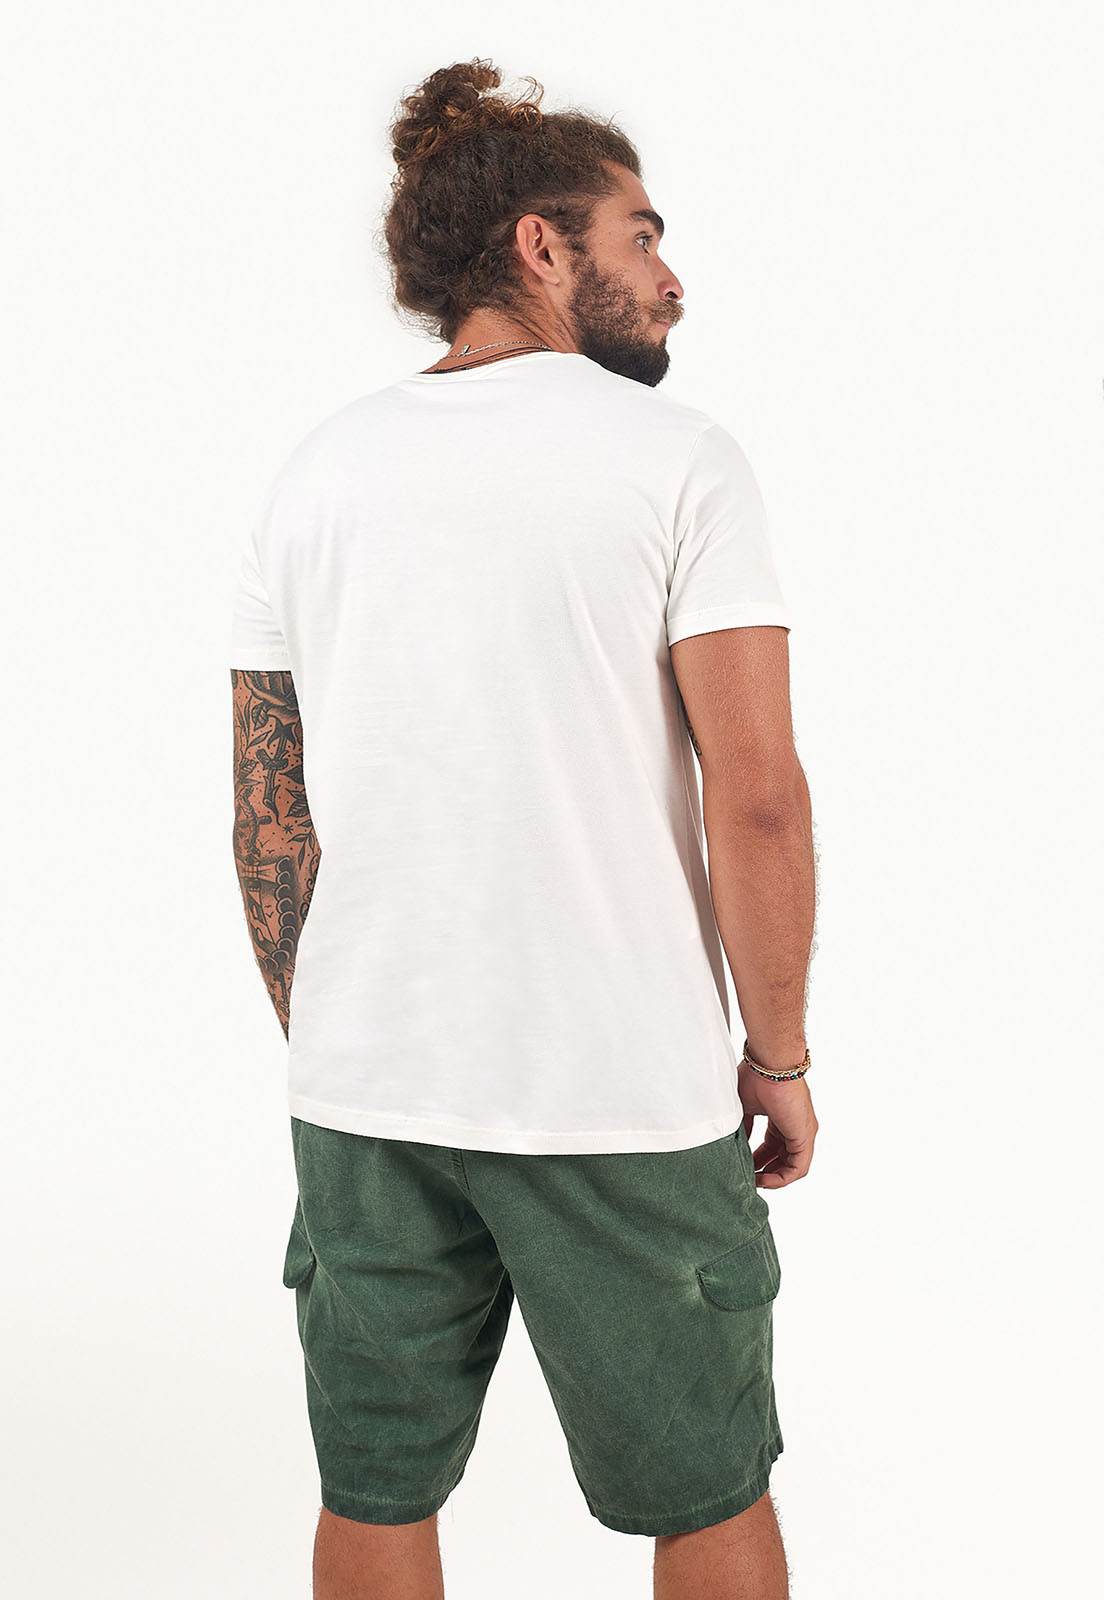 T-Shirt Rio lines Branco melty  - melty surf & Co.